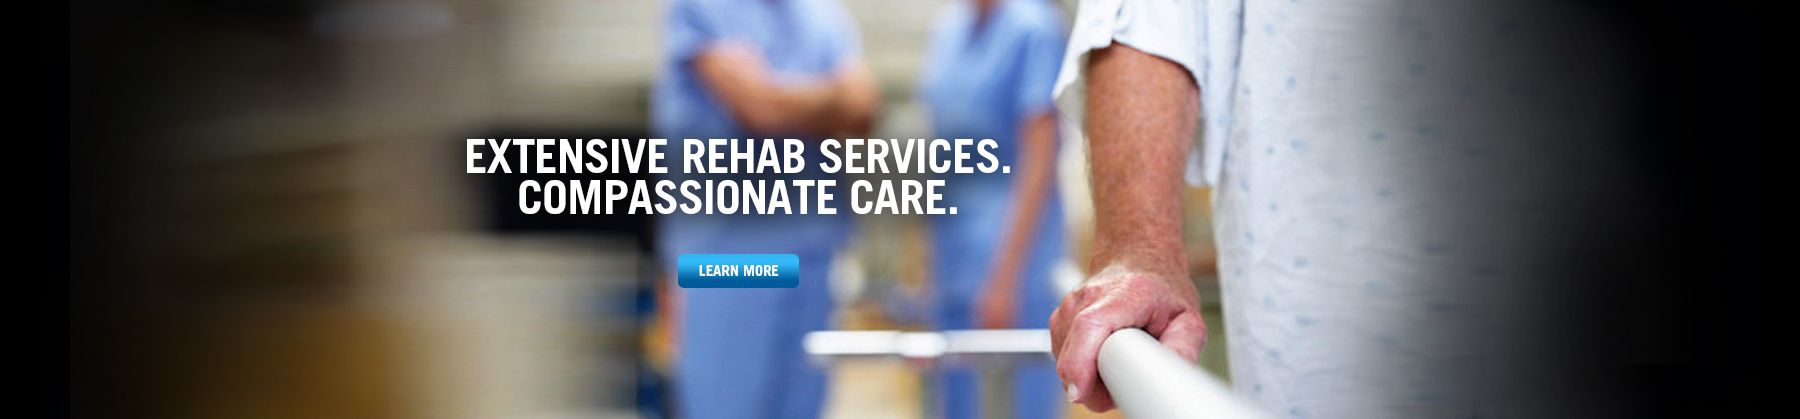 Extensive Rehab Services. Compassionate Care.